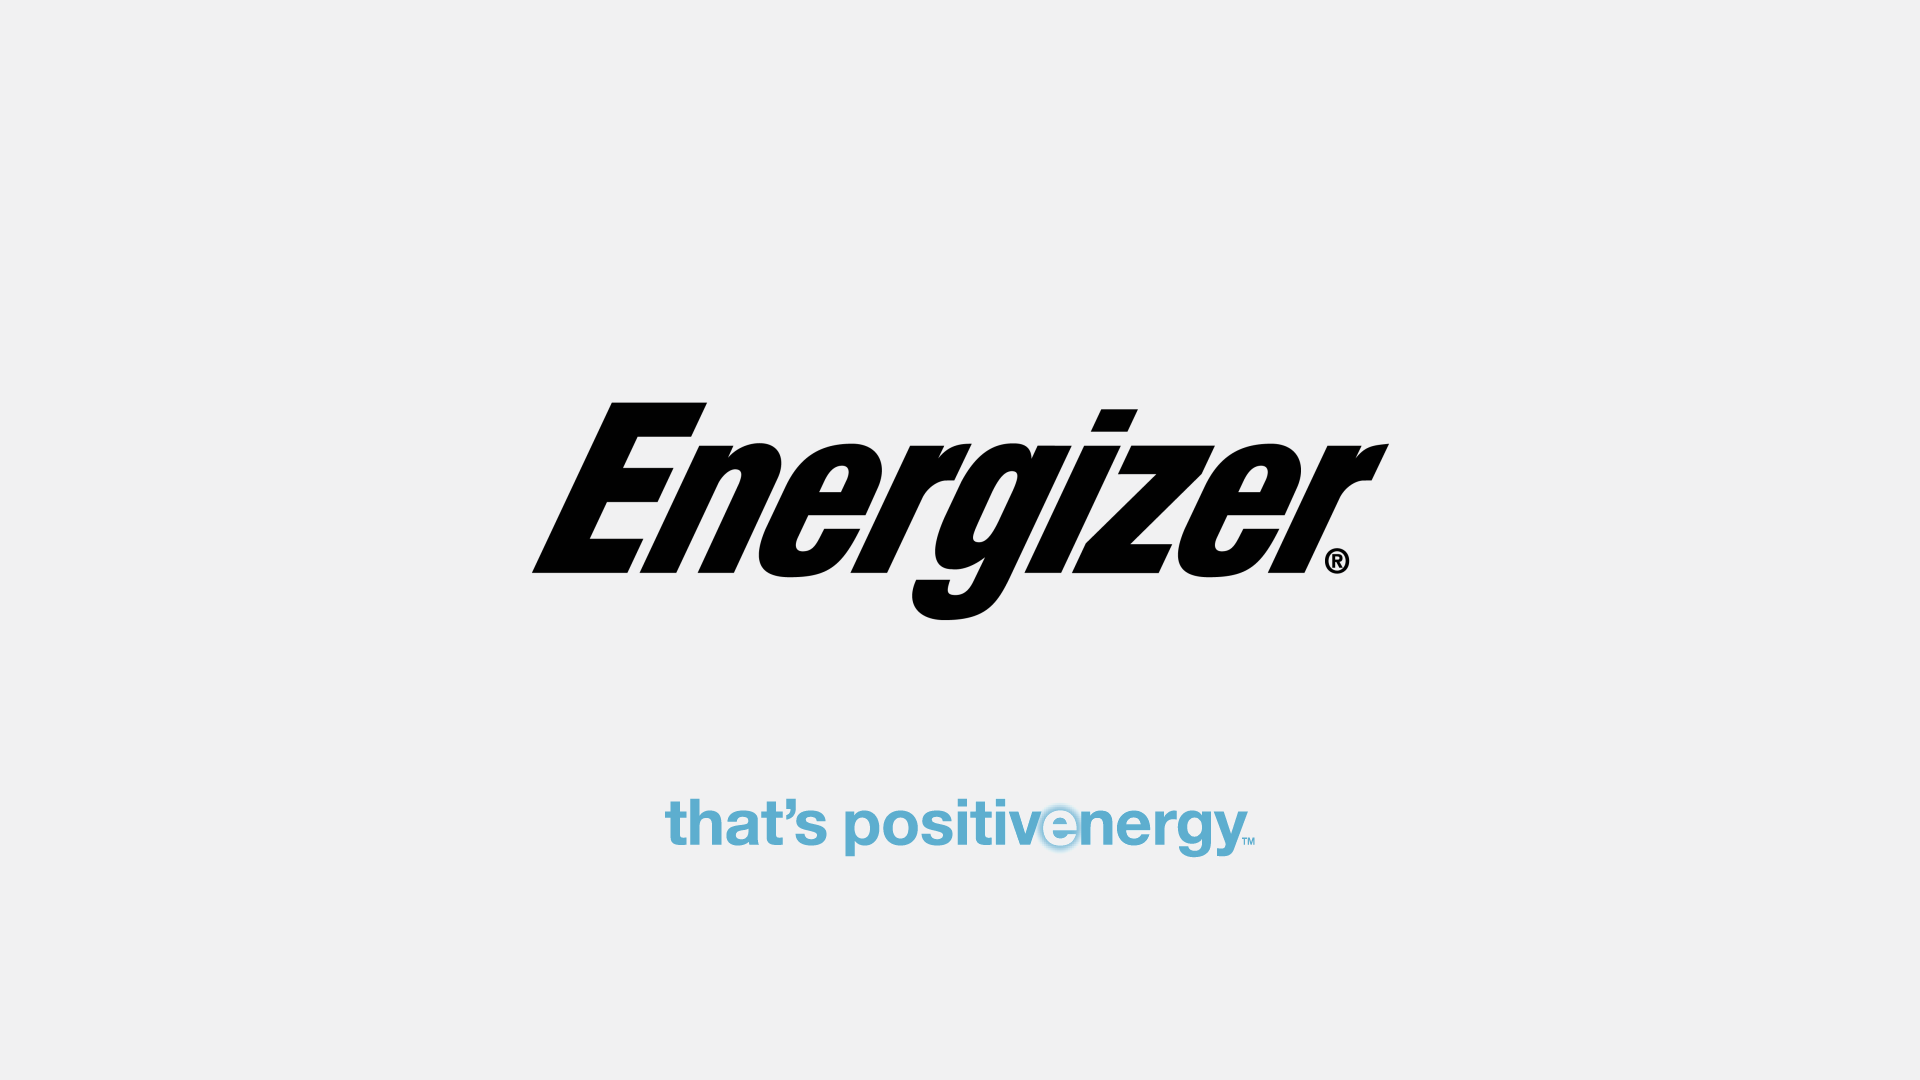 Energizer_Battery_5.8.2015_02064